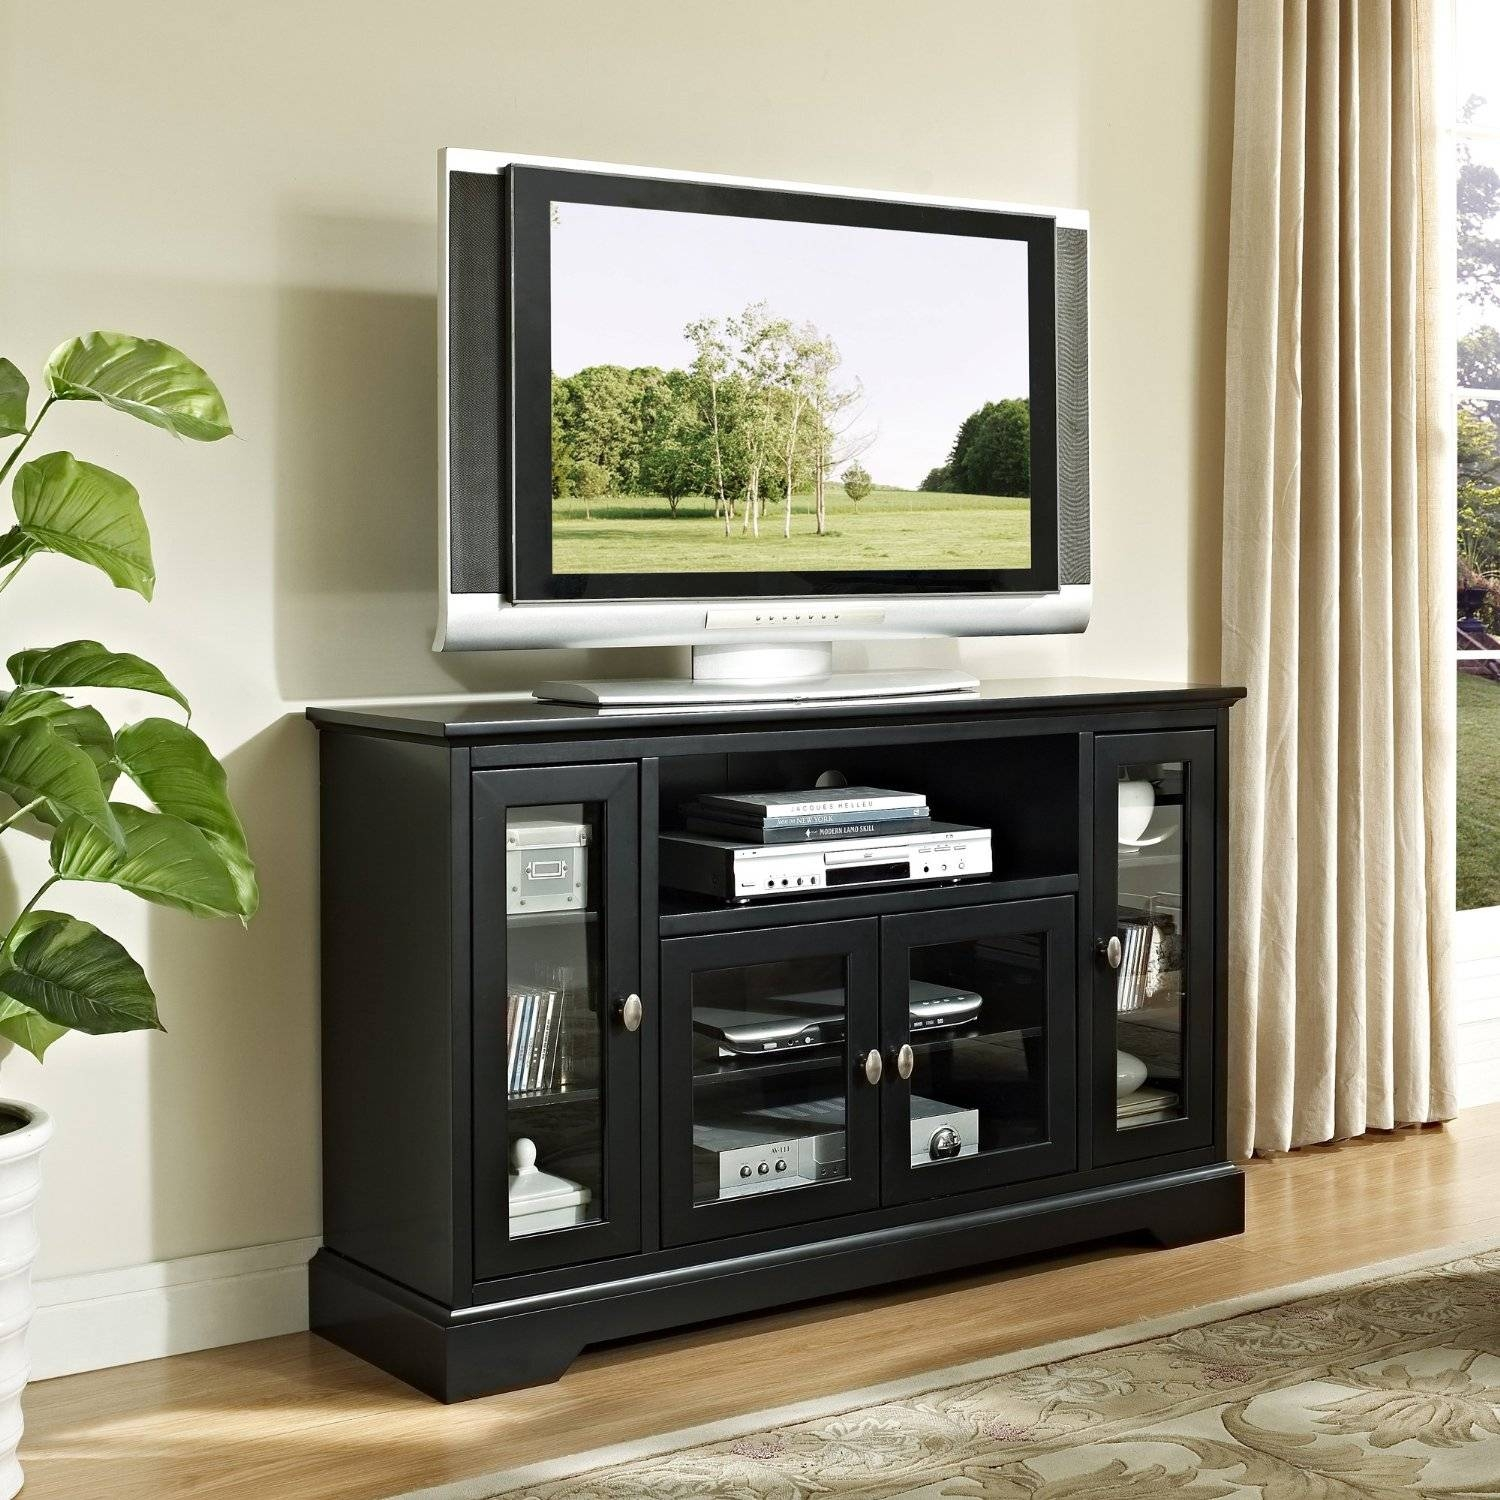 Bedroom Furniture Sets : Tv Stand With Shelves Tv Table Stand With Tall  Skinny Tv Stands Interior Bedroom Ideas ookie1.com